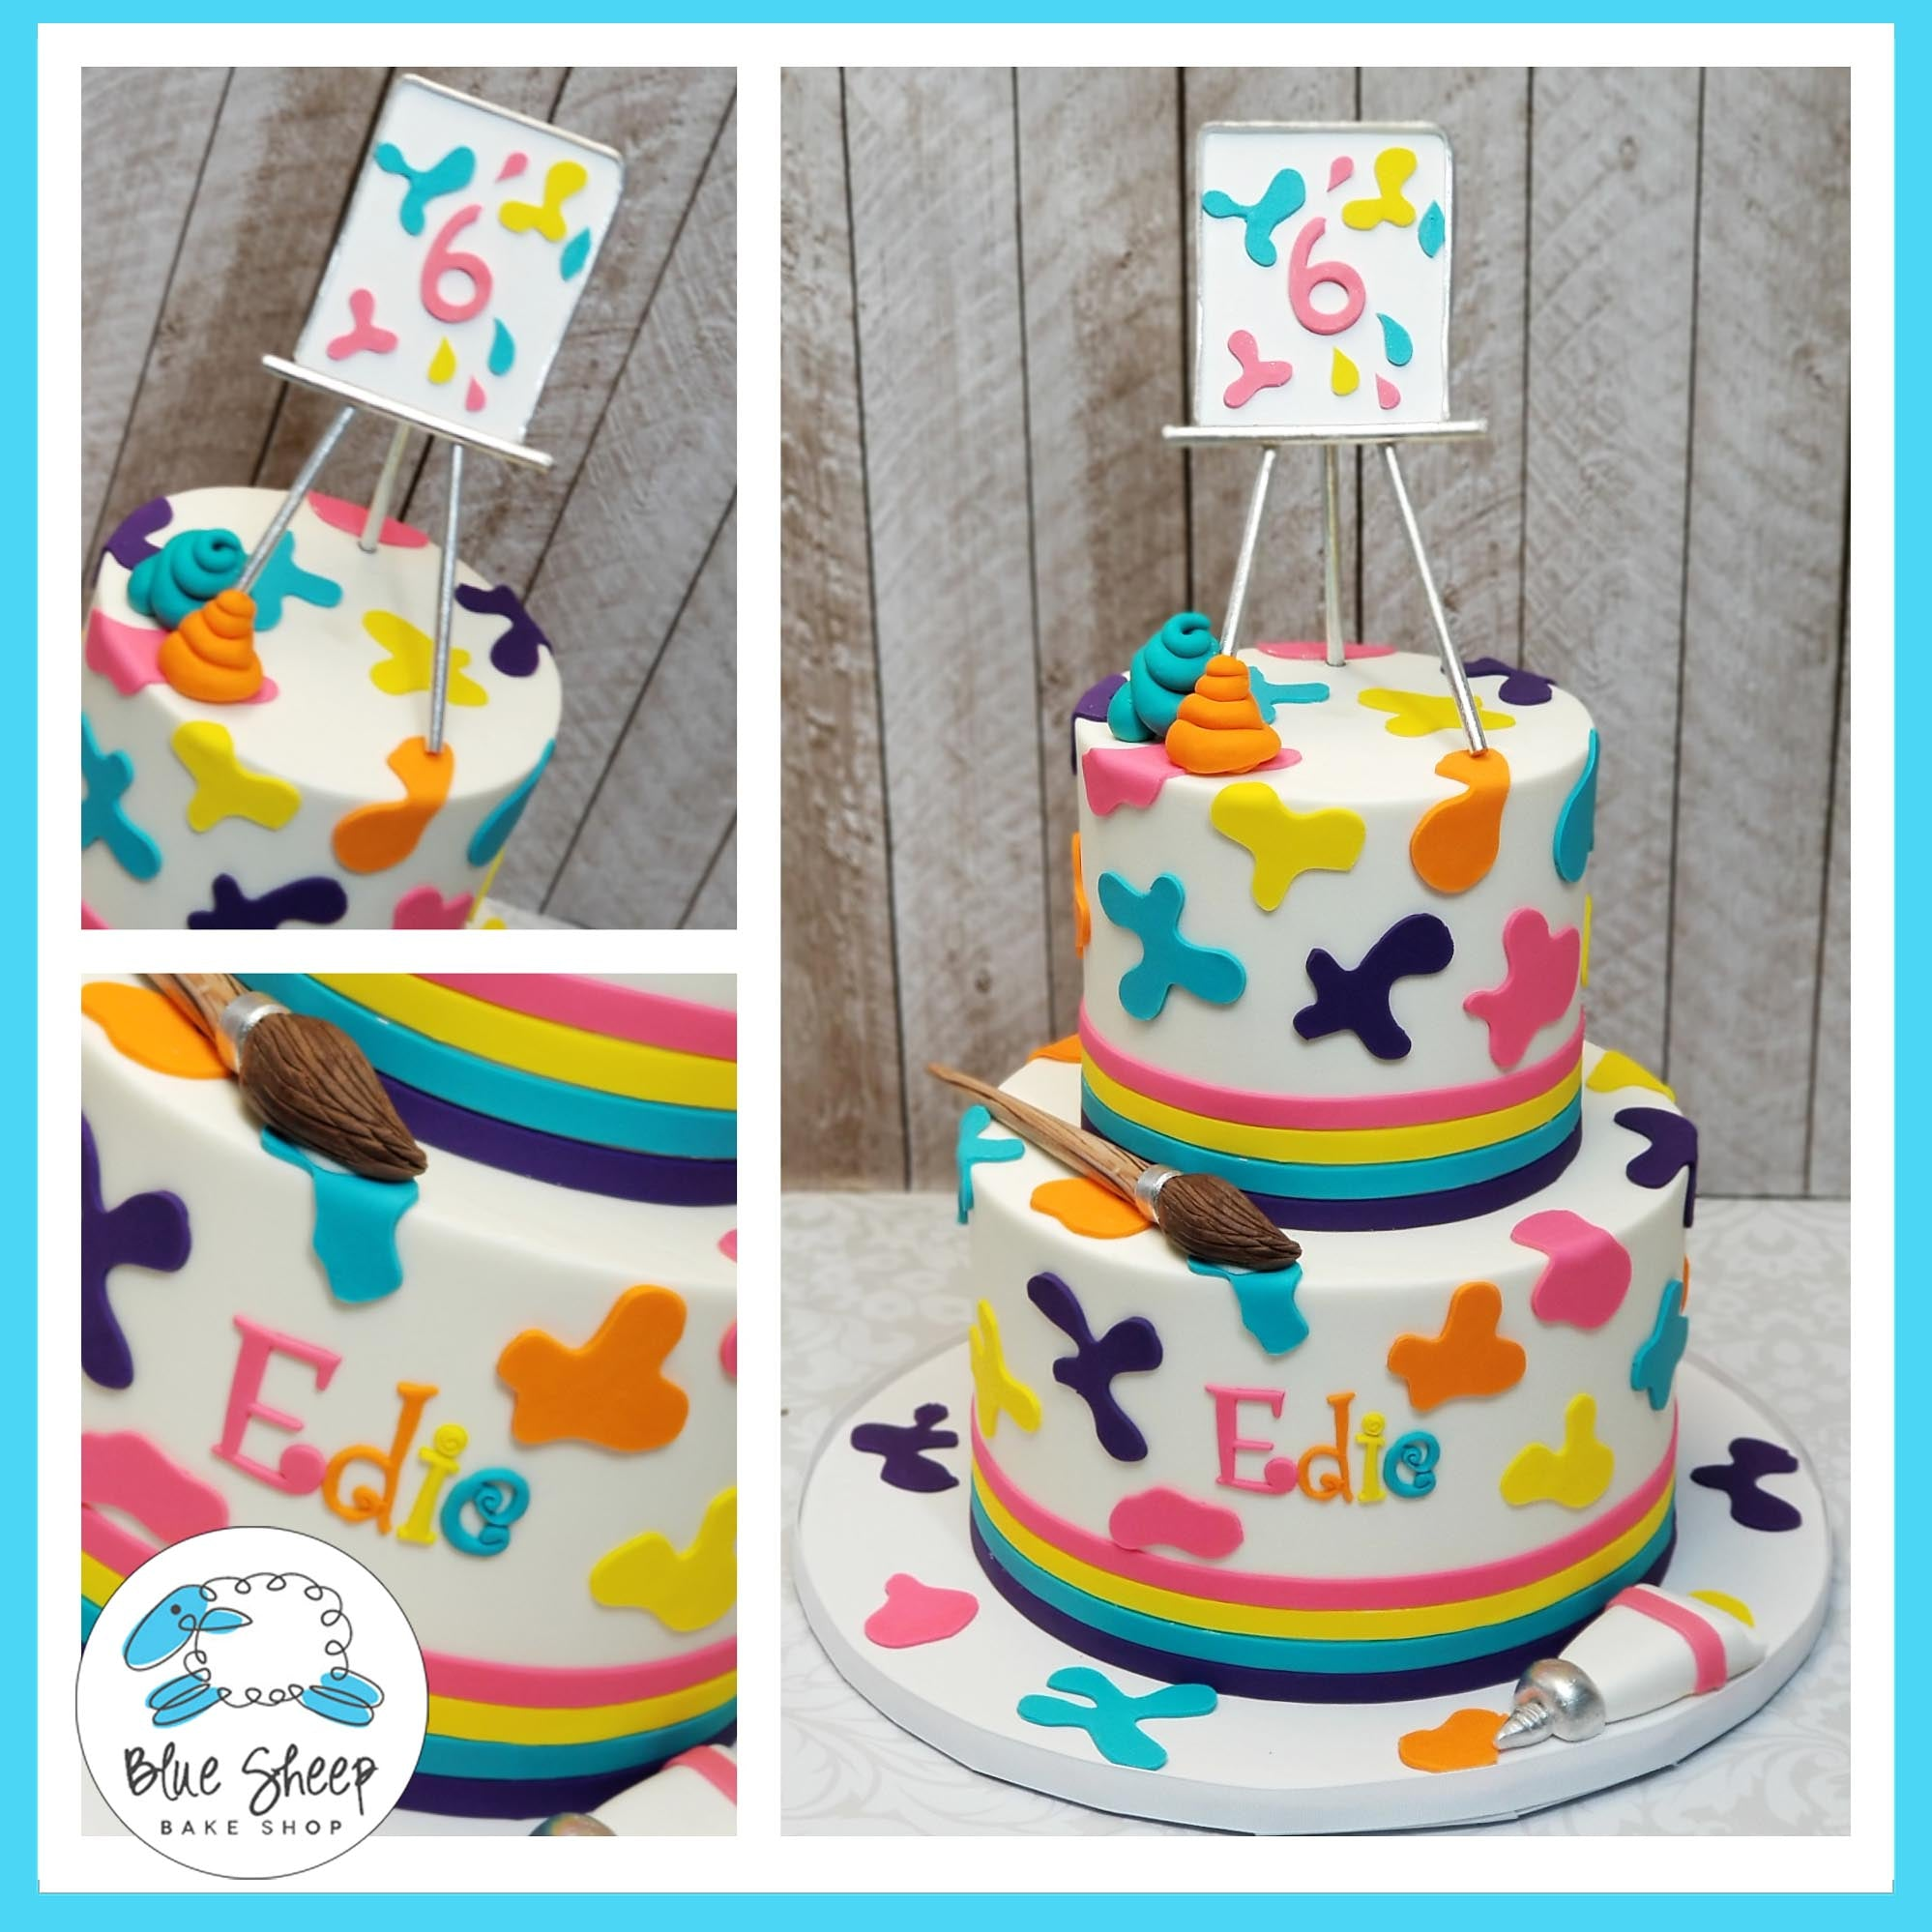 Tiered Buttercream Art Party Birthday Cake